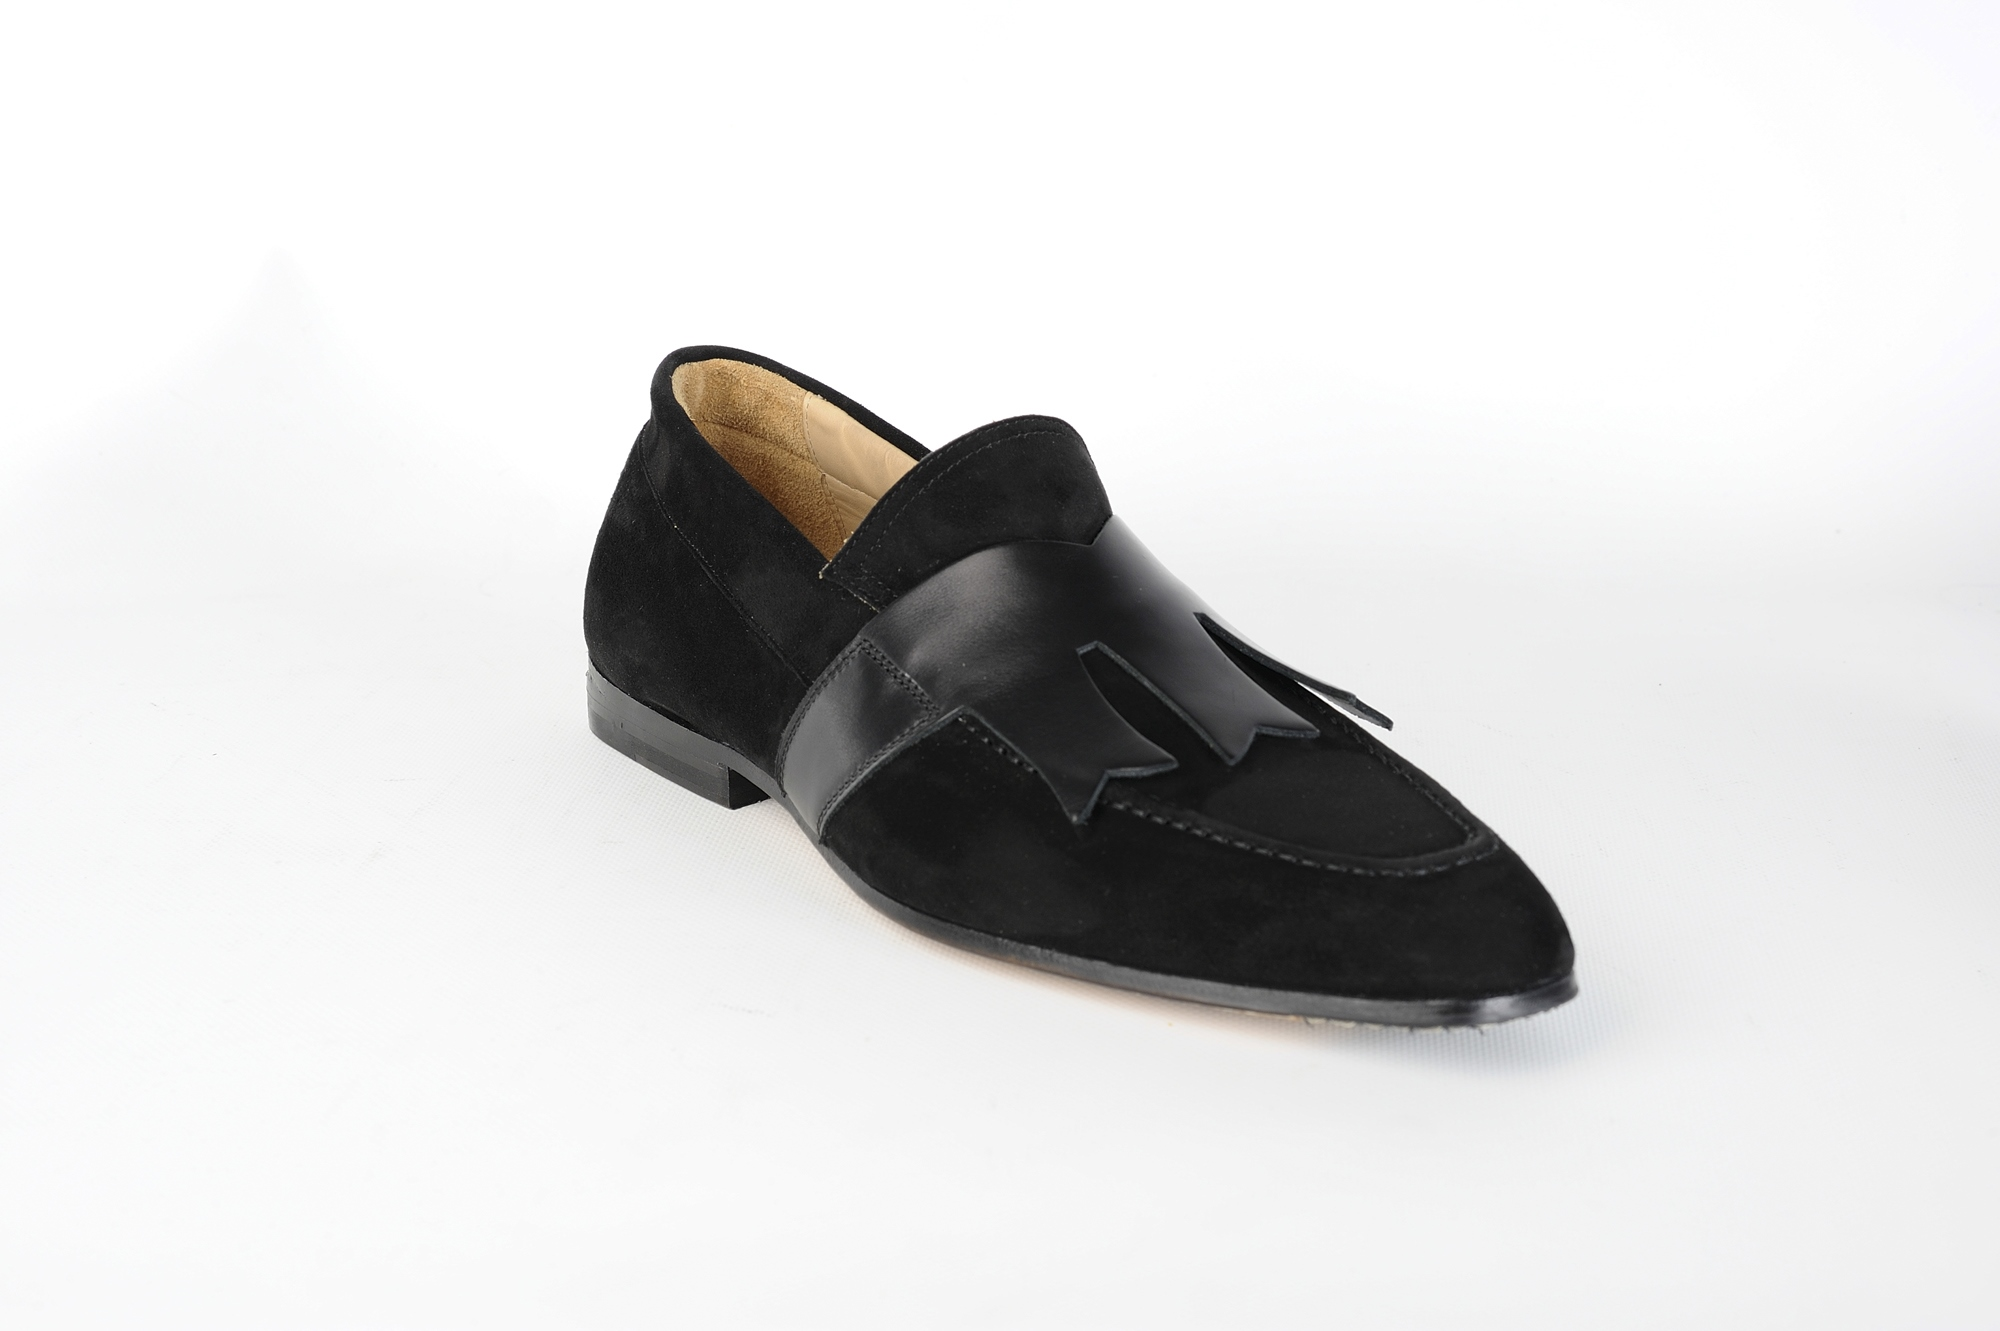 tobia longarini footwear crafted black leather artur suede